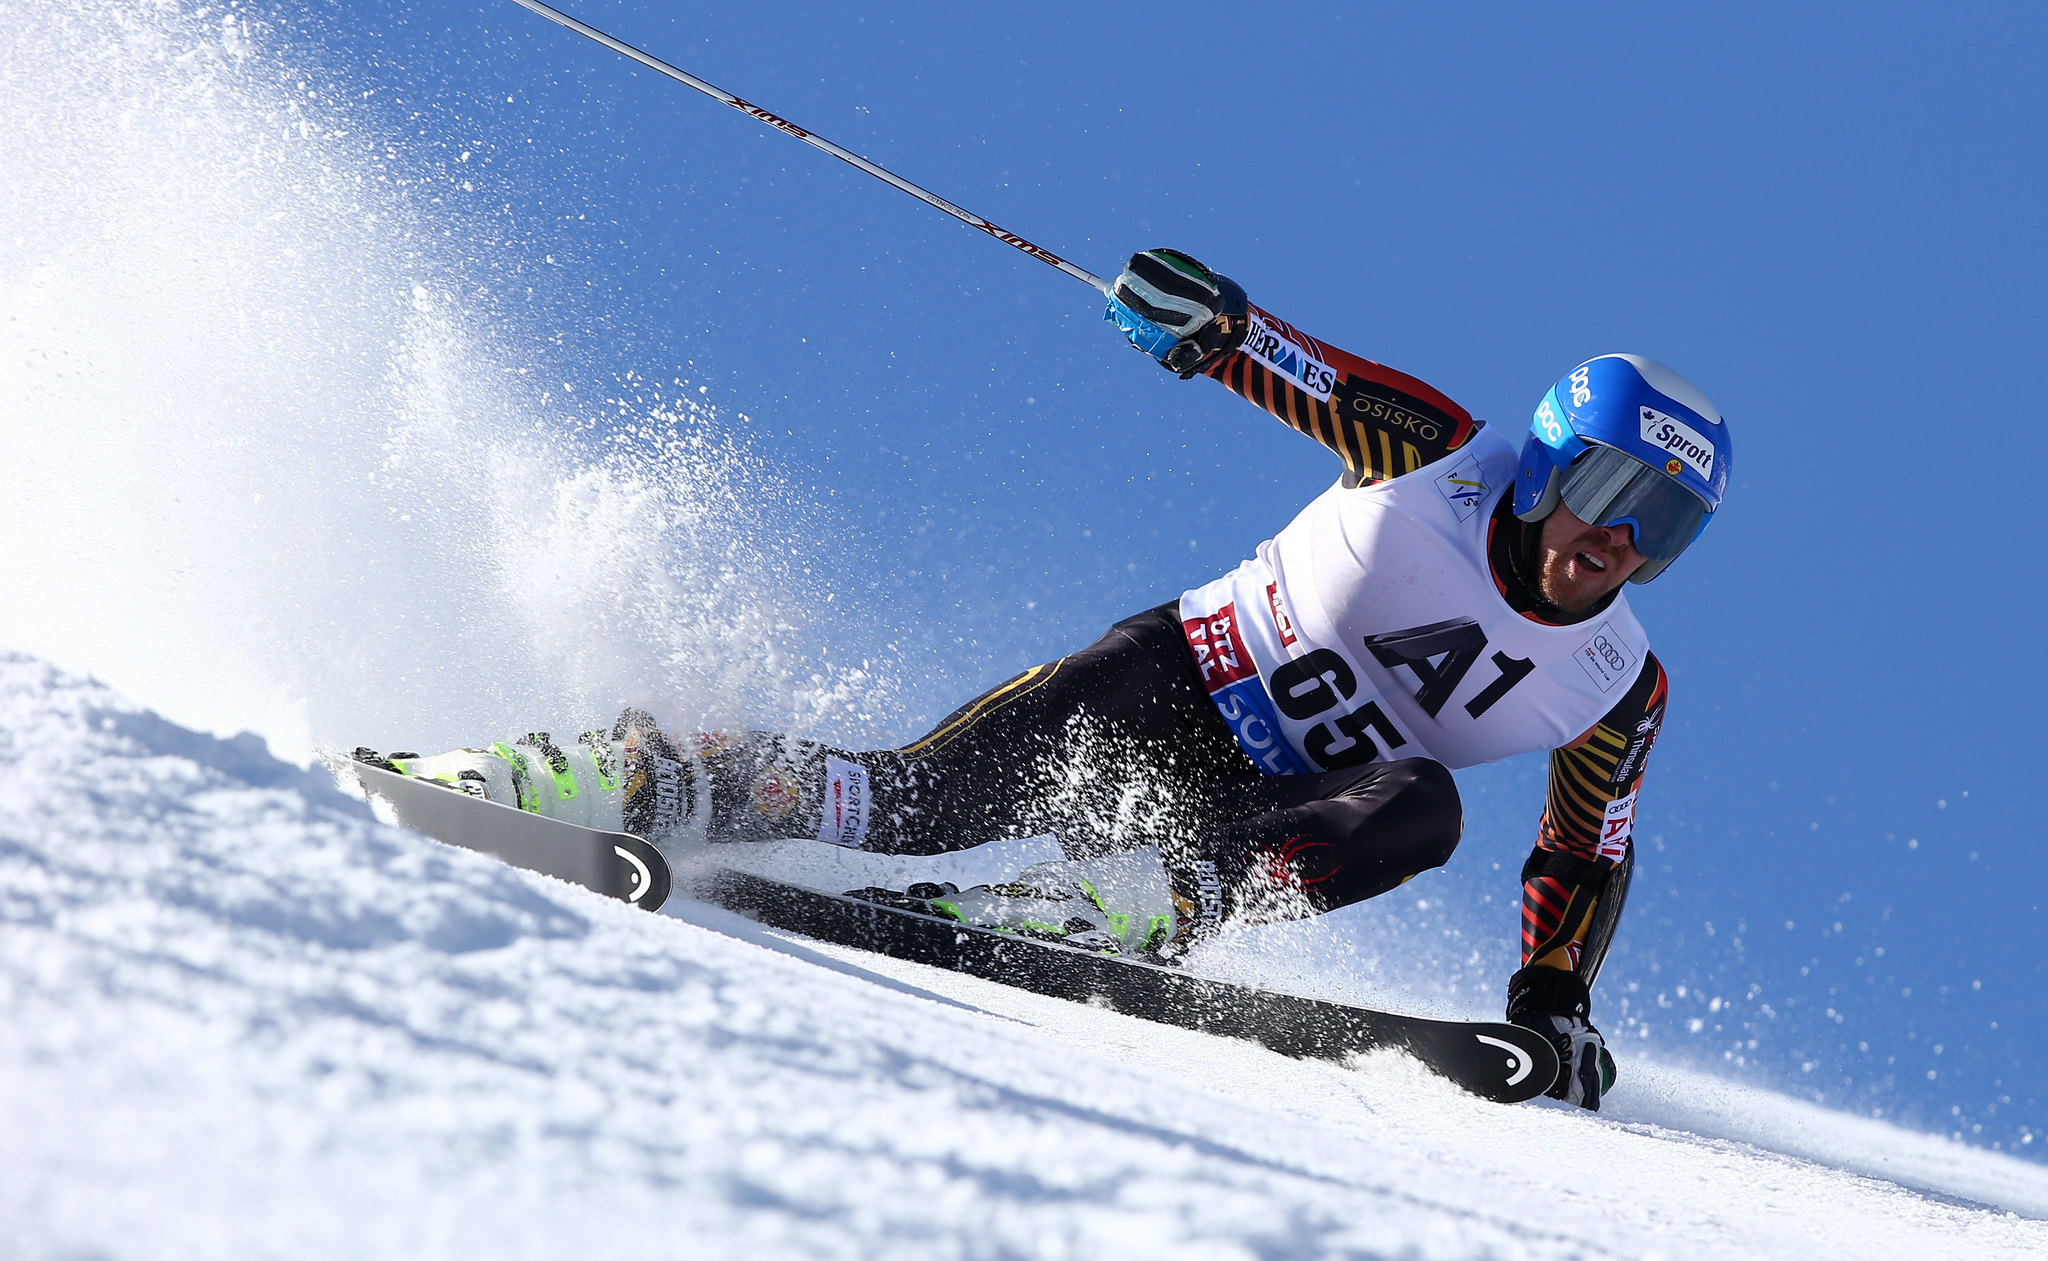 Dustin Cook charges in Soelden, Austria, during the first super-G races of the 2013-14 season.